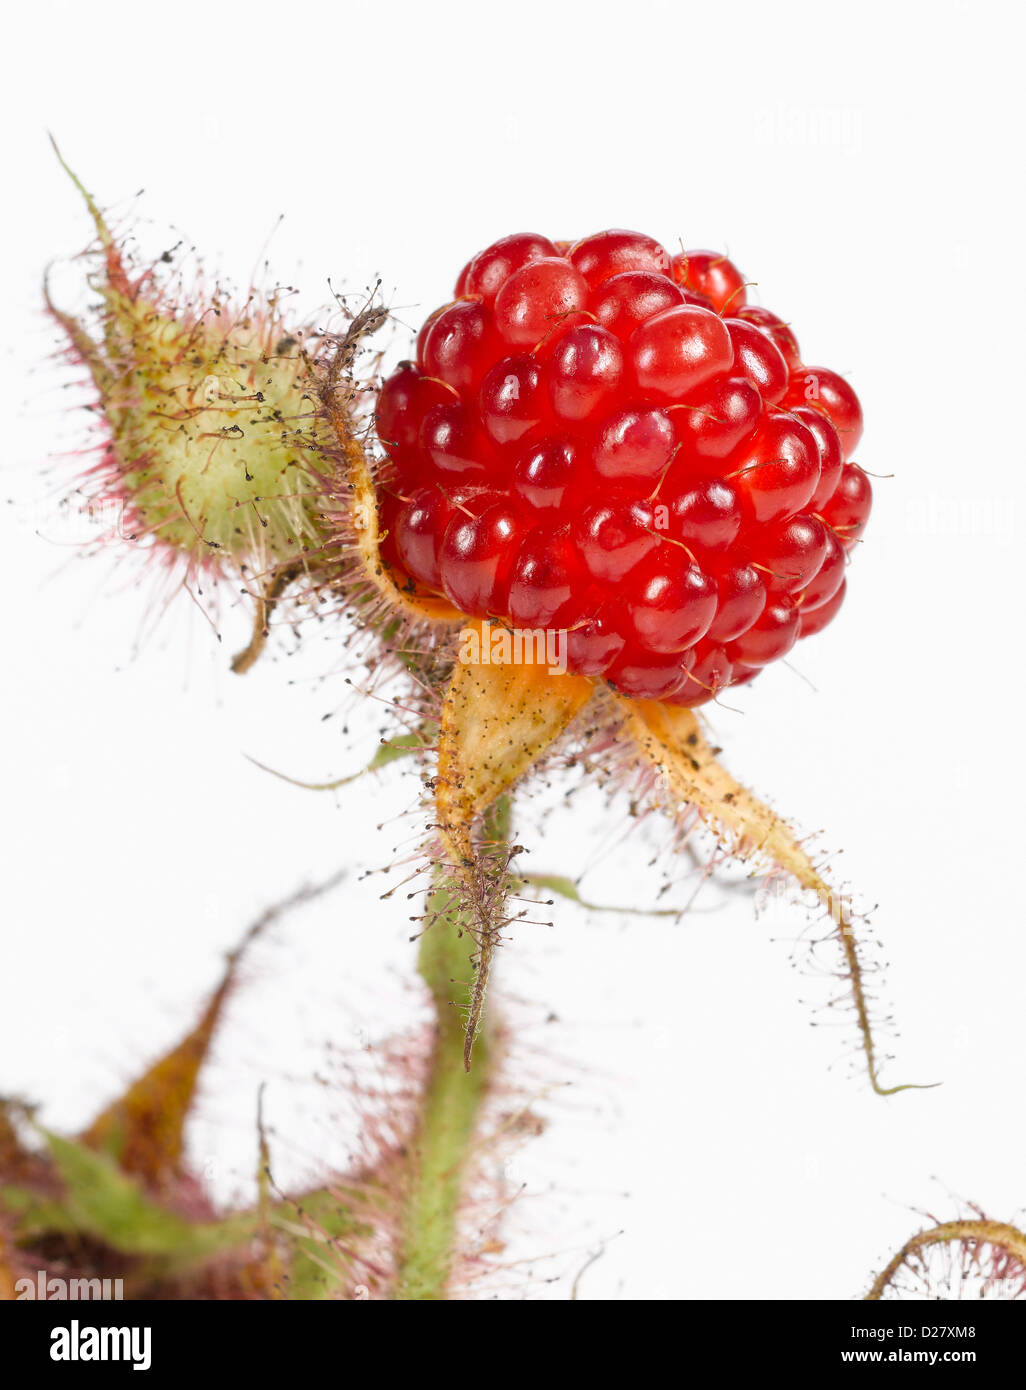 Ripe Wild Raspberry on Stem, Close Up Stock Photo